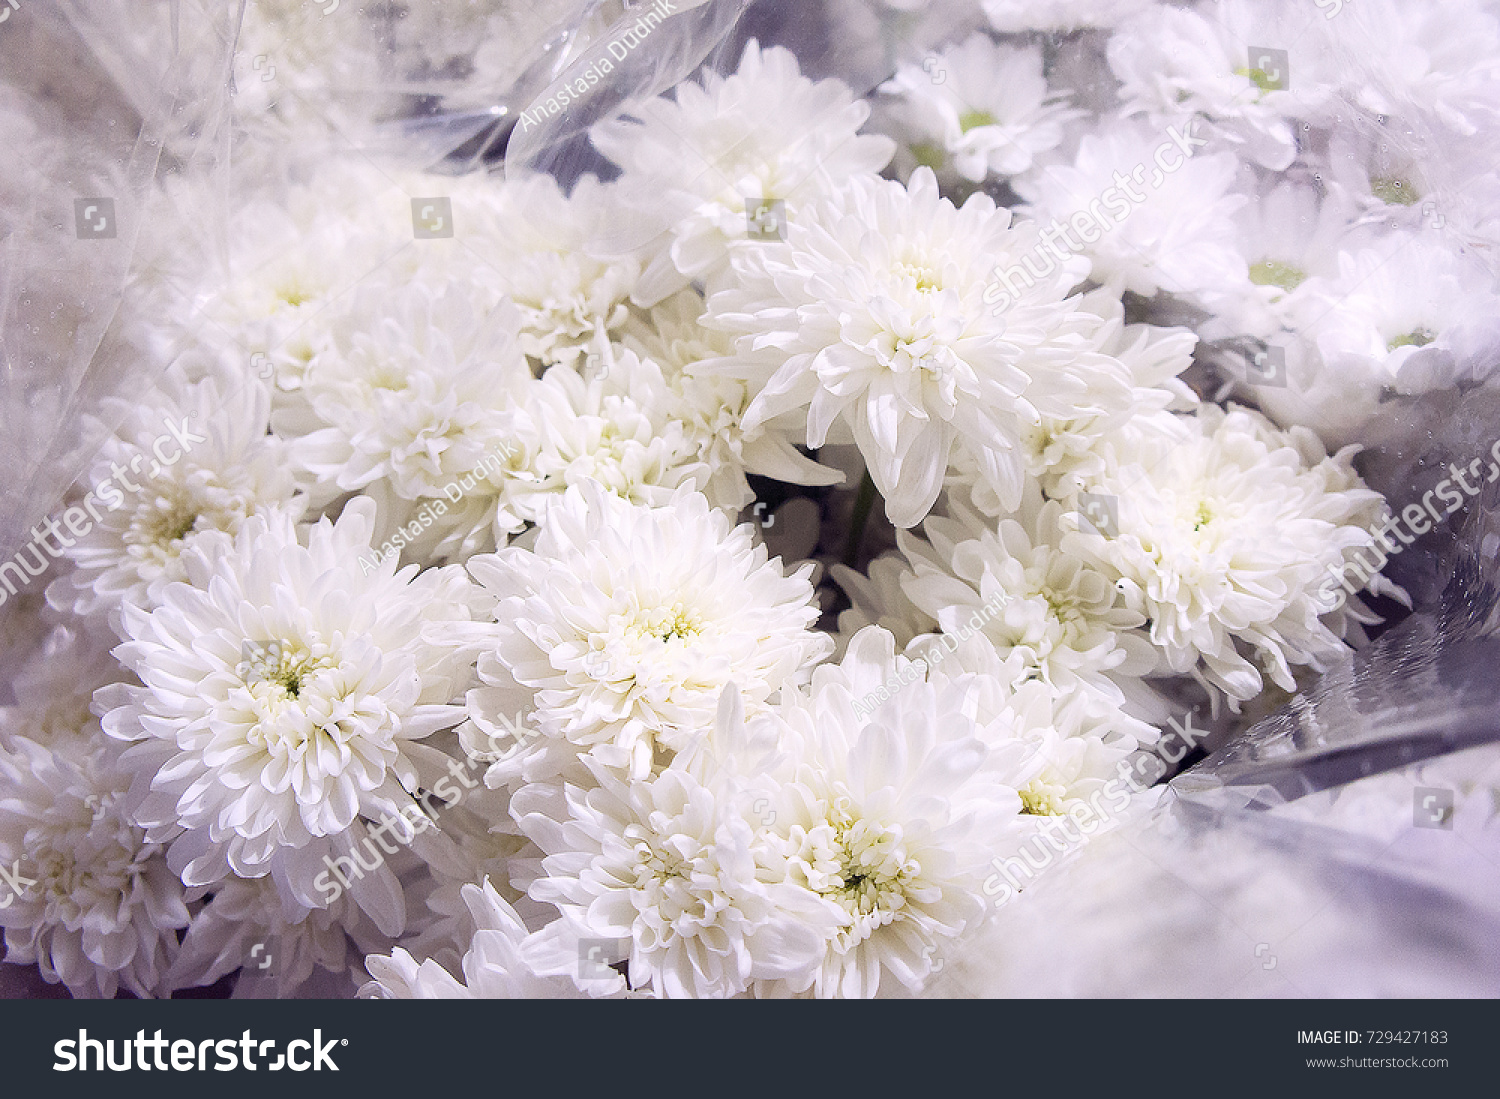 Awesome white chrysanthemum flower meaning image top wedding gowns nice white chrysanthemum flower meaning festooning wedding and mightylinksfo